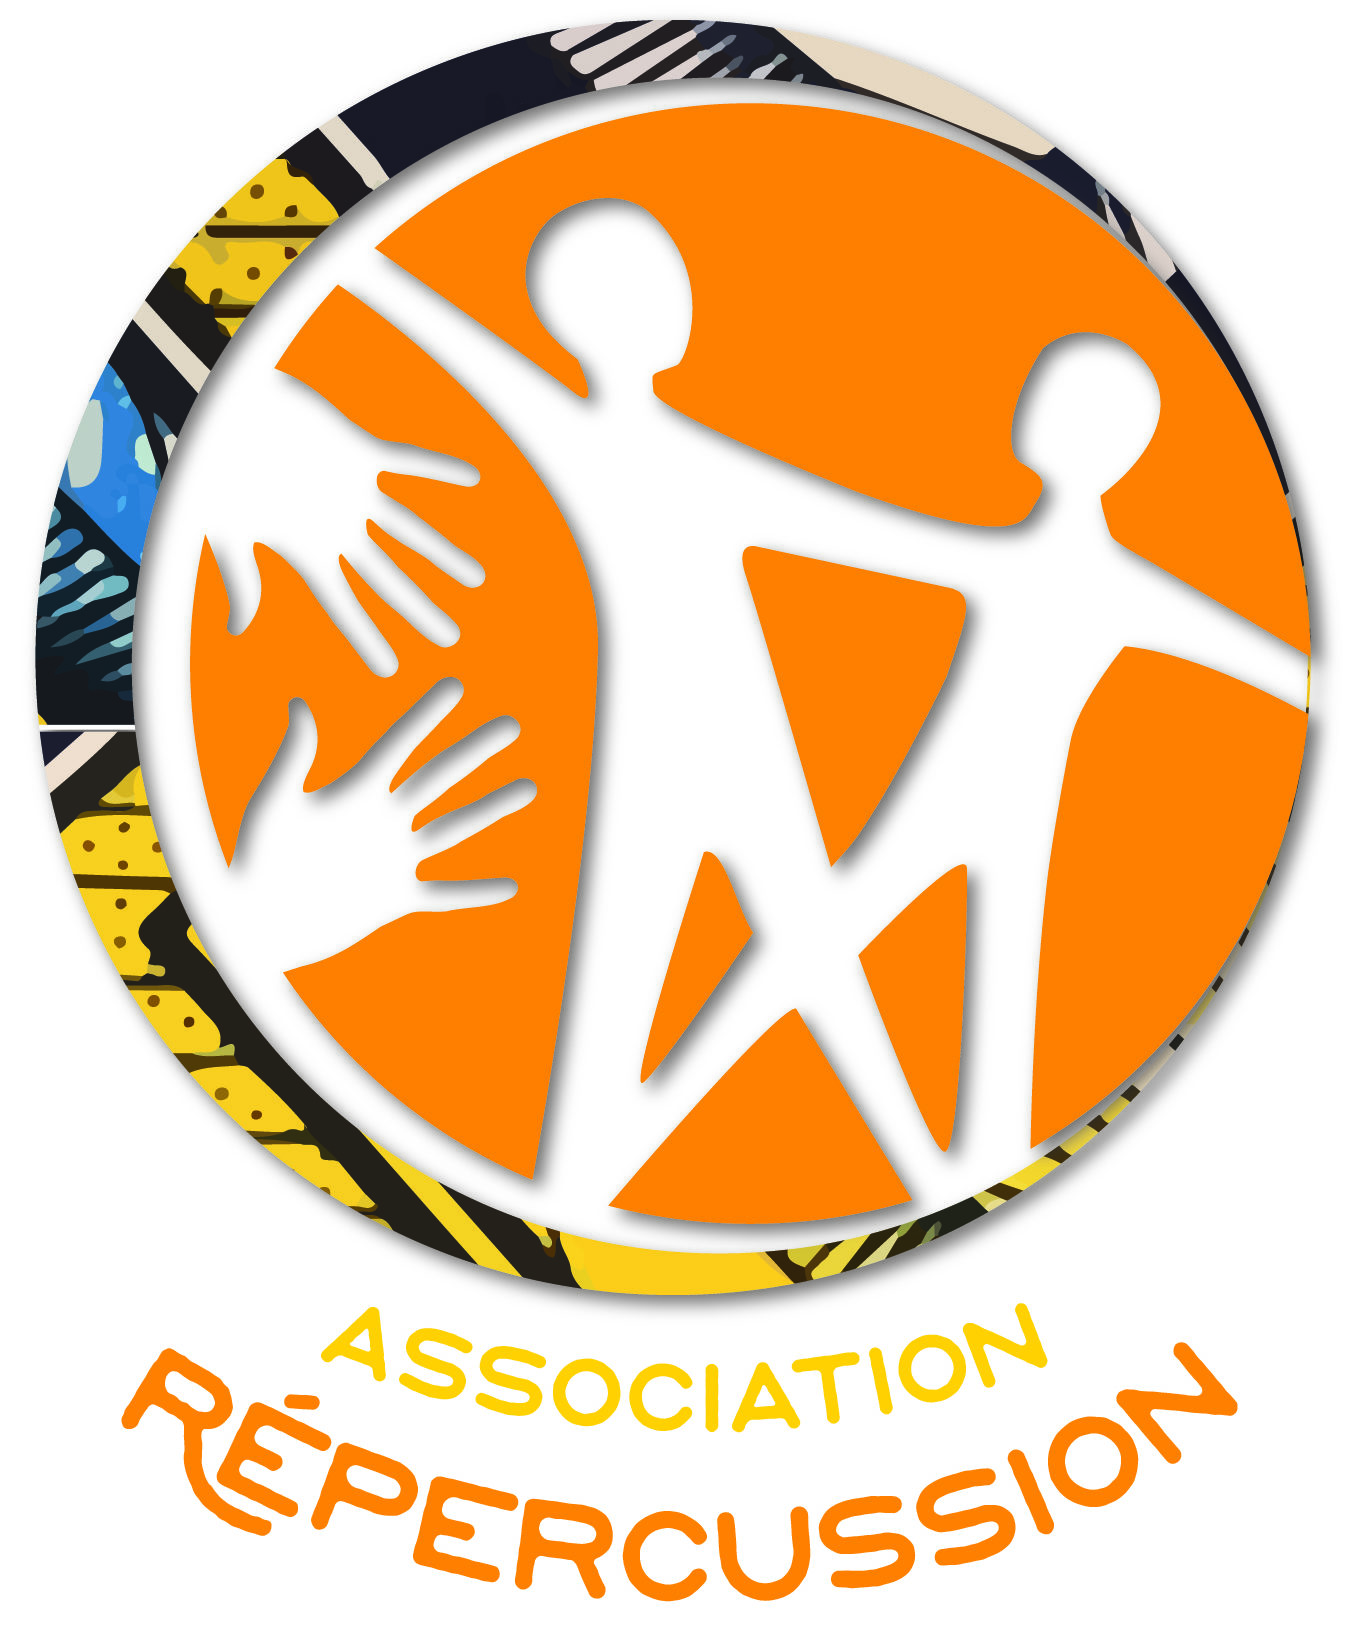 ASSOCIATION REPERCUSSION